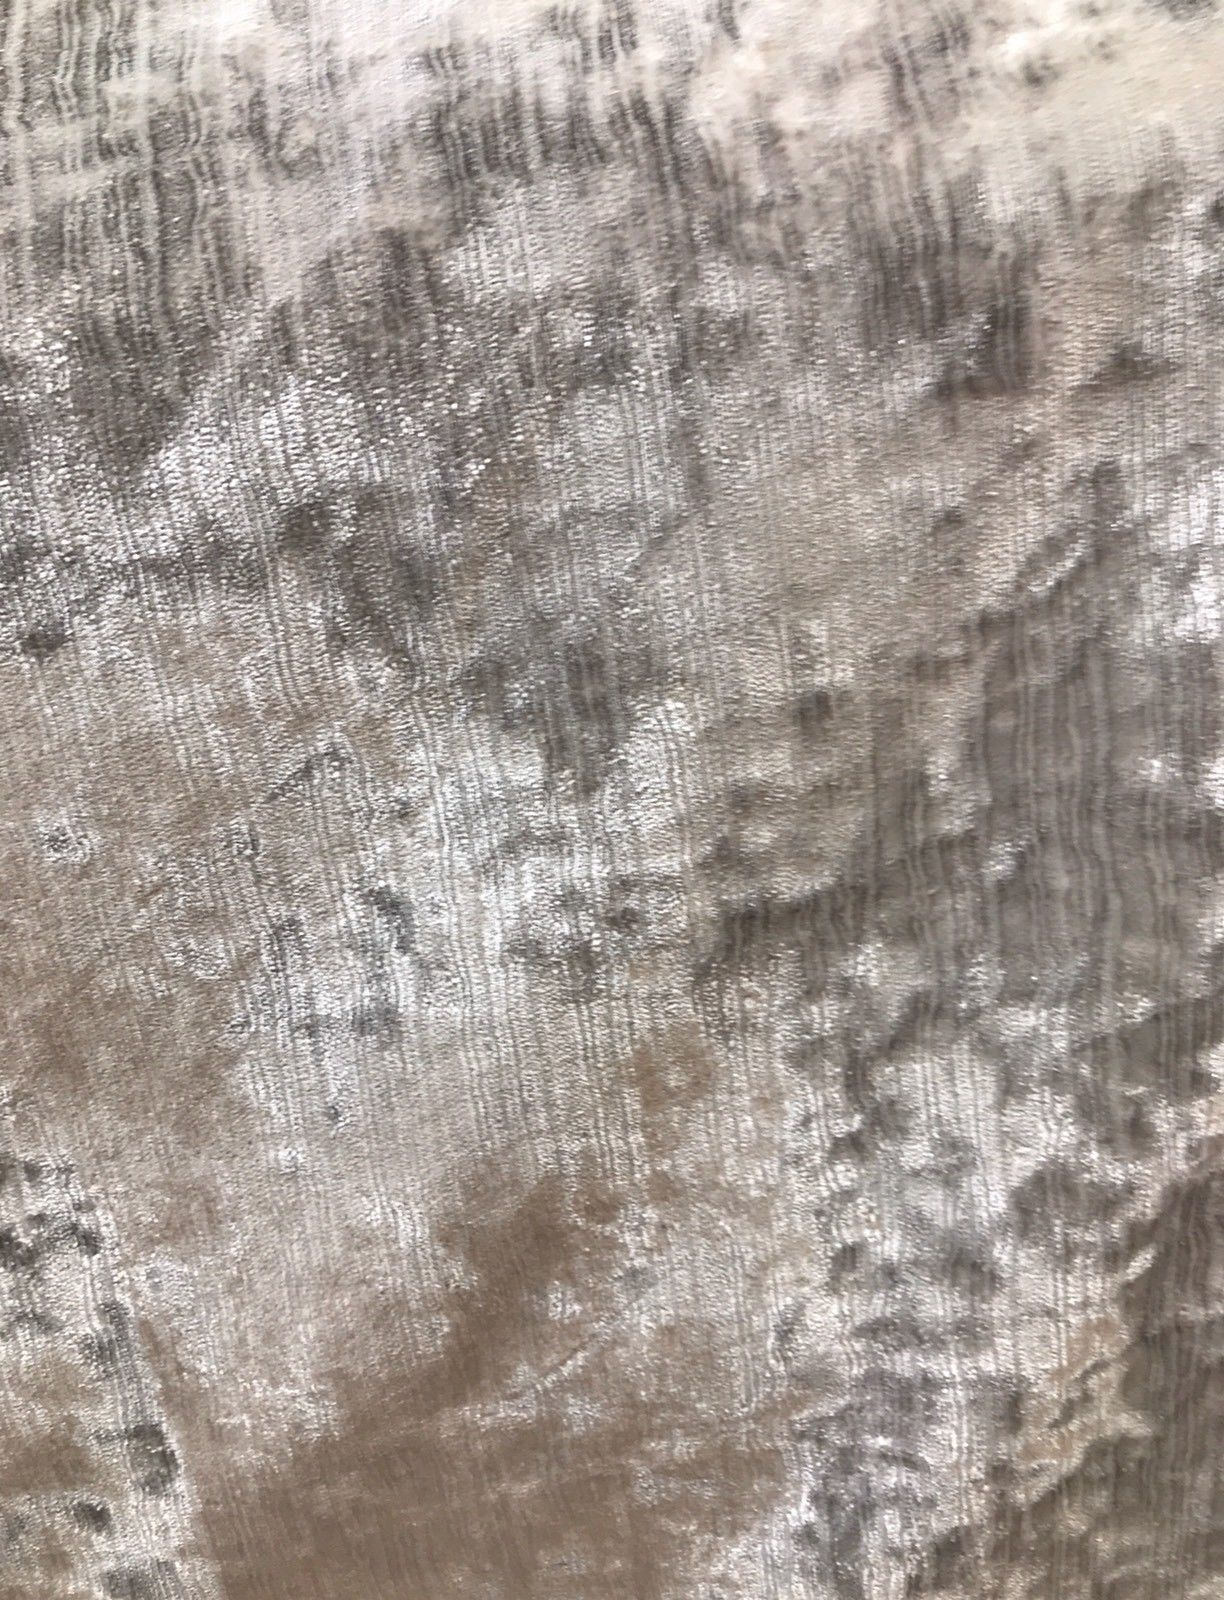 SWATCH- Designer Italian Crushed Velvet Chenille Upholstery Fabric - Silver Gray - Fancy Styles Fabric Boutique